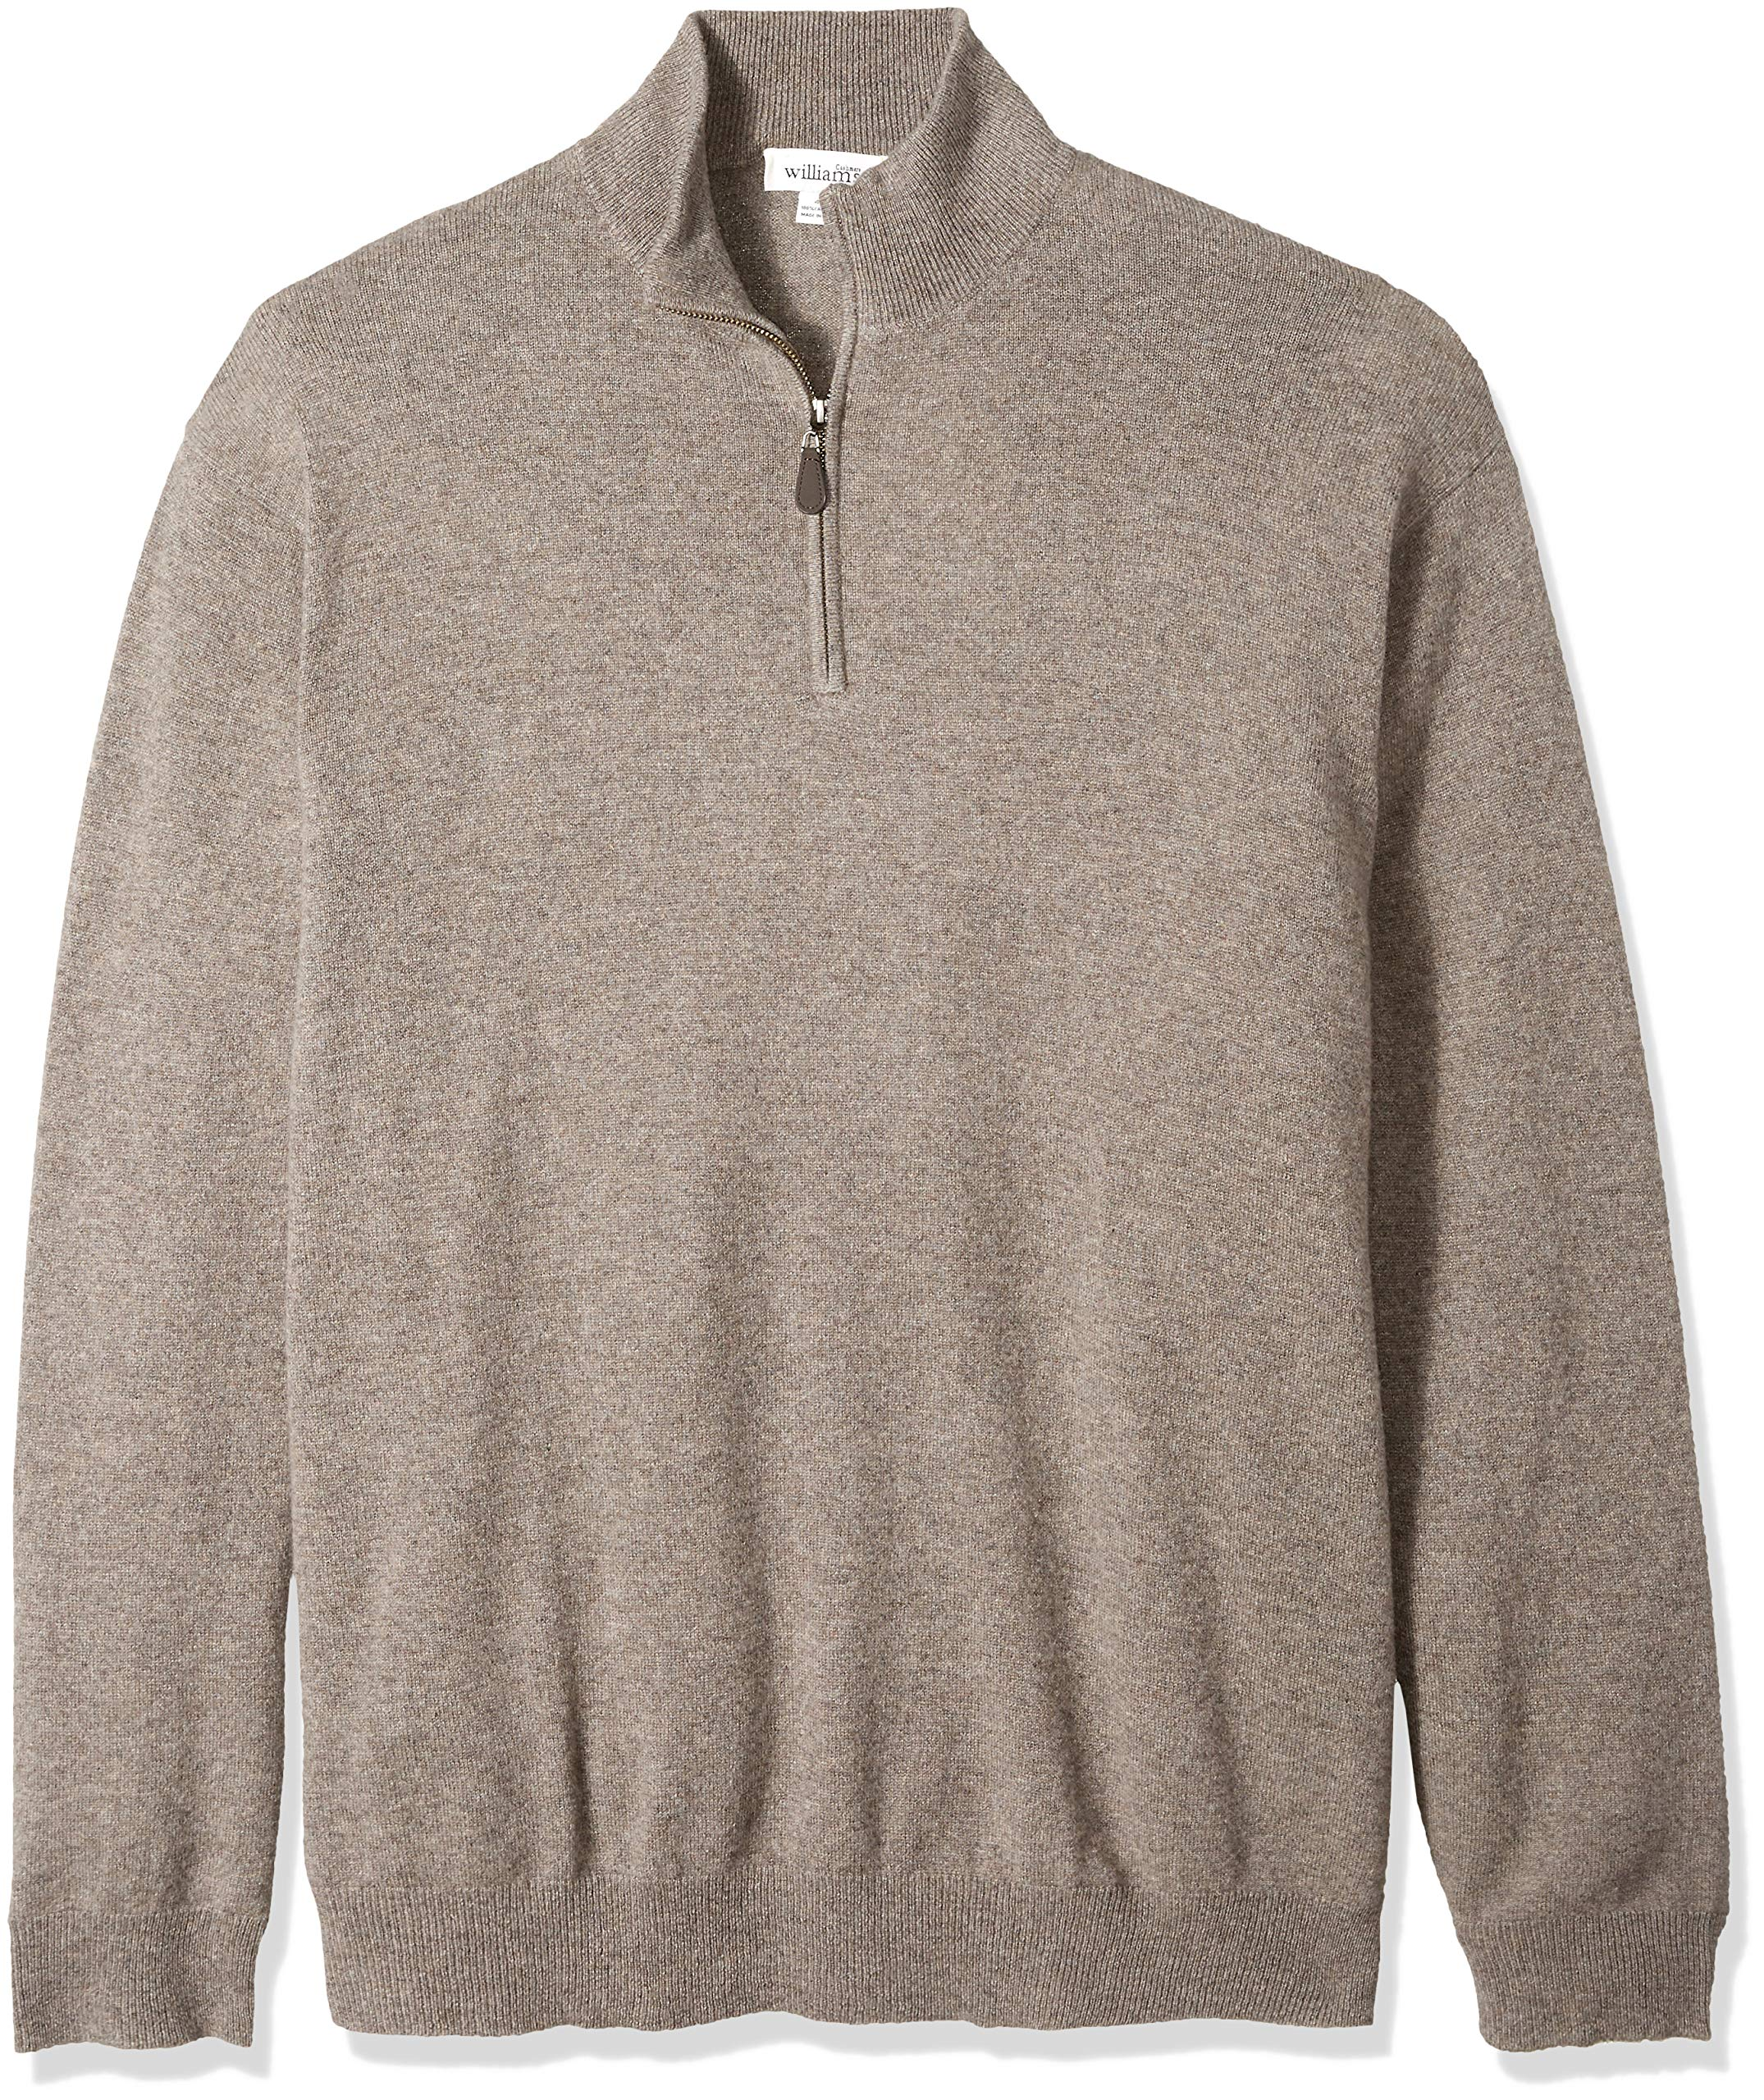 Williams Cashmere Men's Big and Tall 100% Cashmere Mock Neck Pullover Haff Zip Sweater, Fossil XT